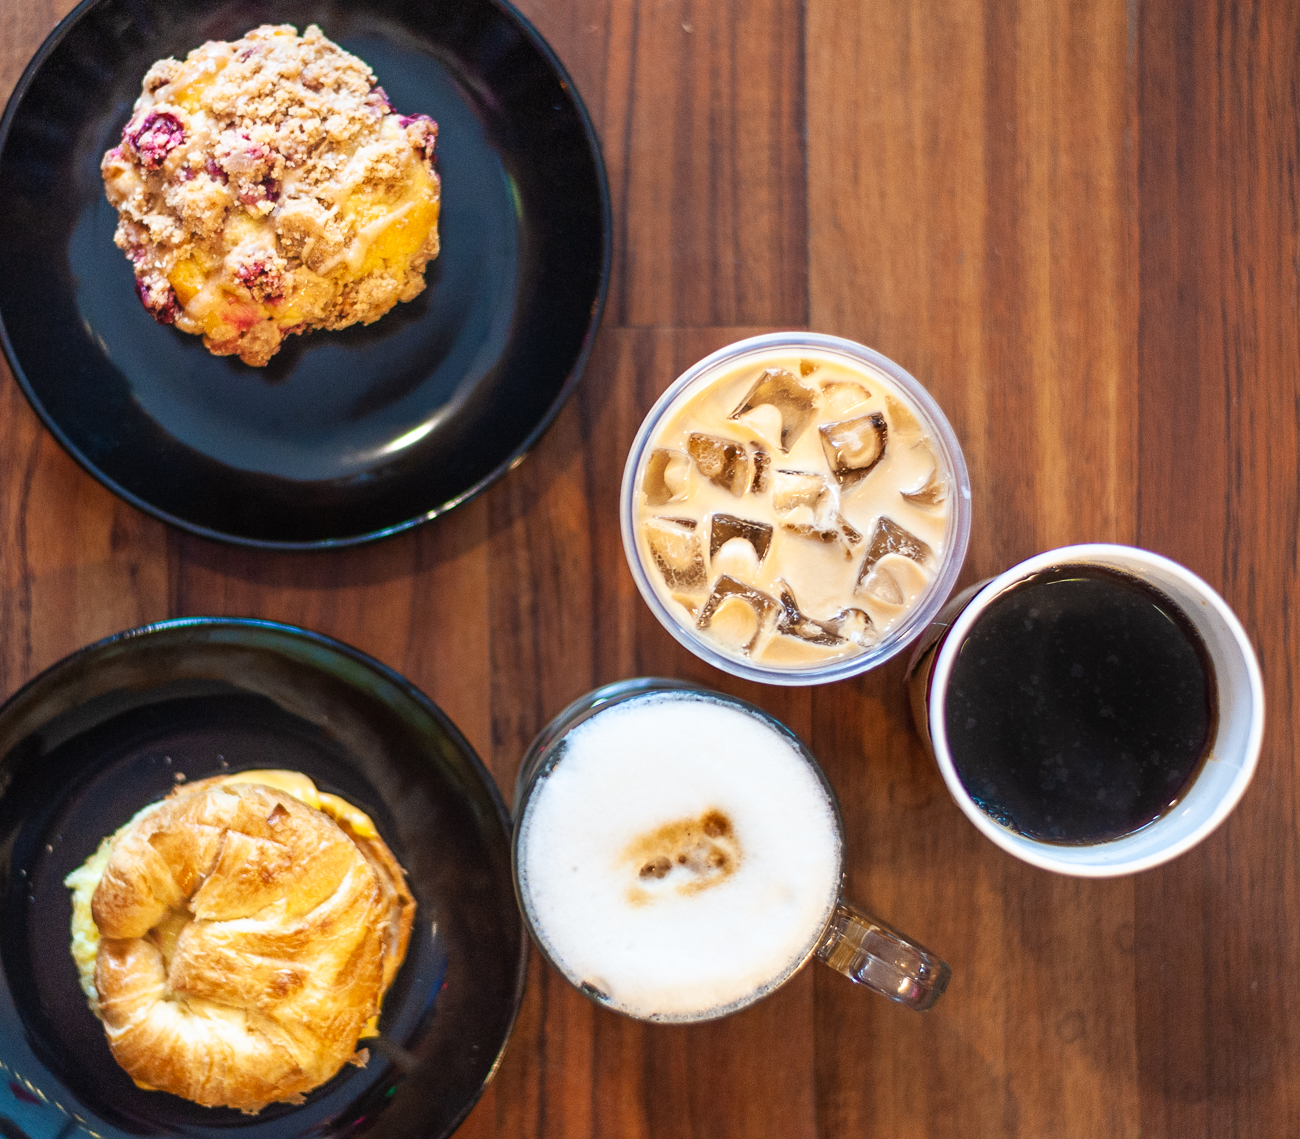 Breakfast Sandwich, scone, iced coffee, latte, and black coffee{ }/ Image: Kellie Coleman // Published: 1.31.21